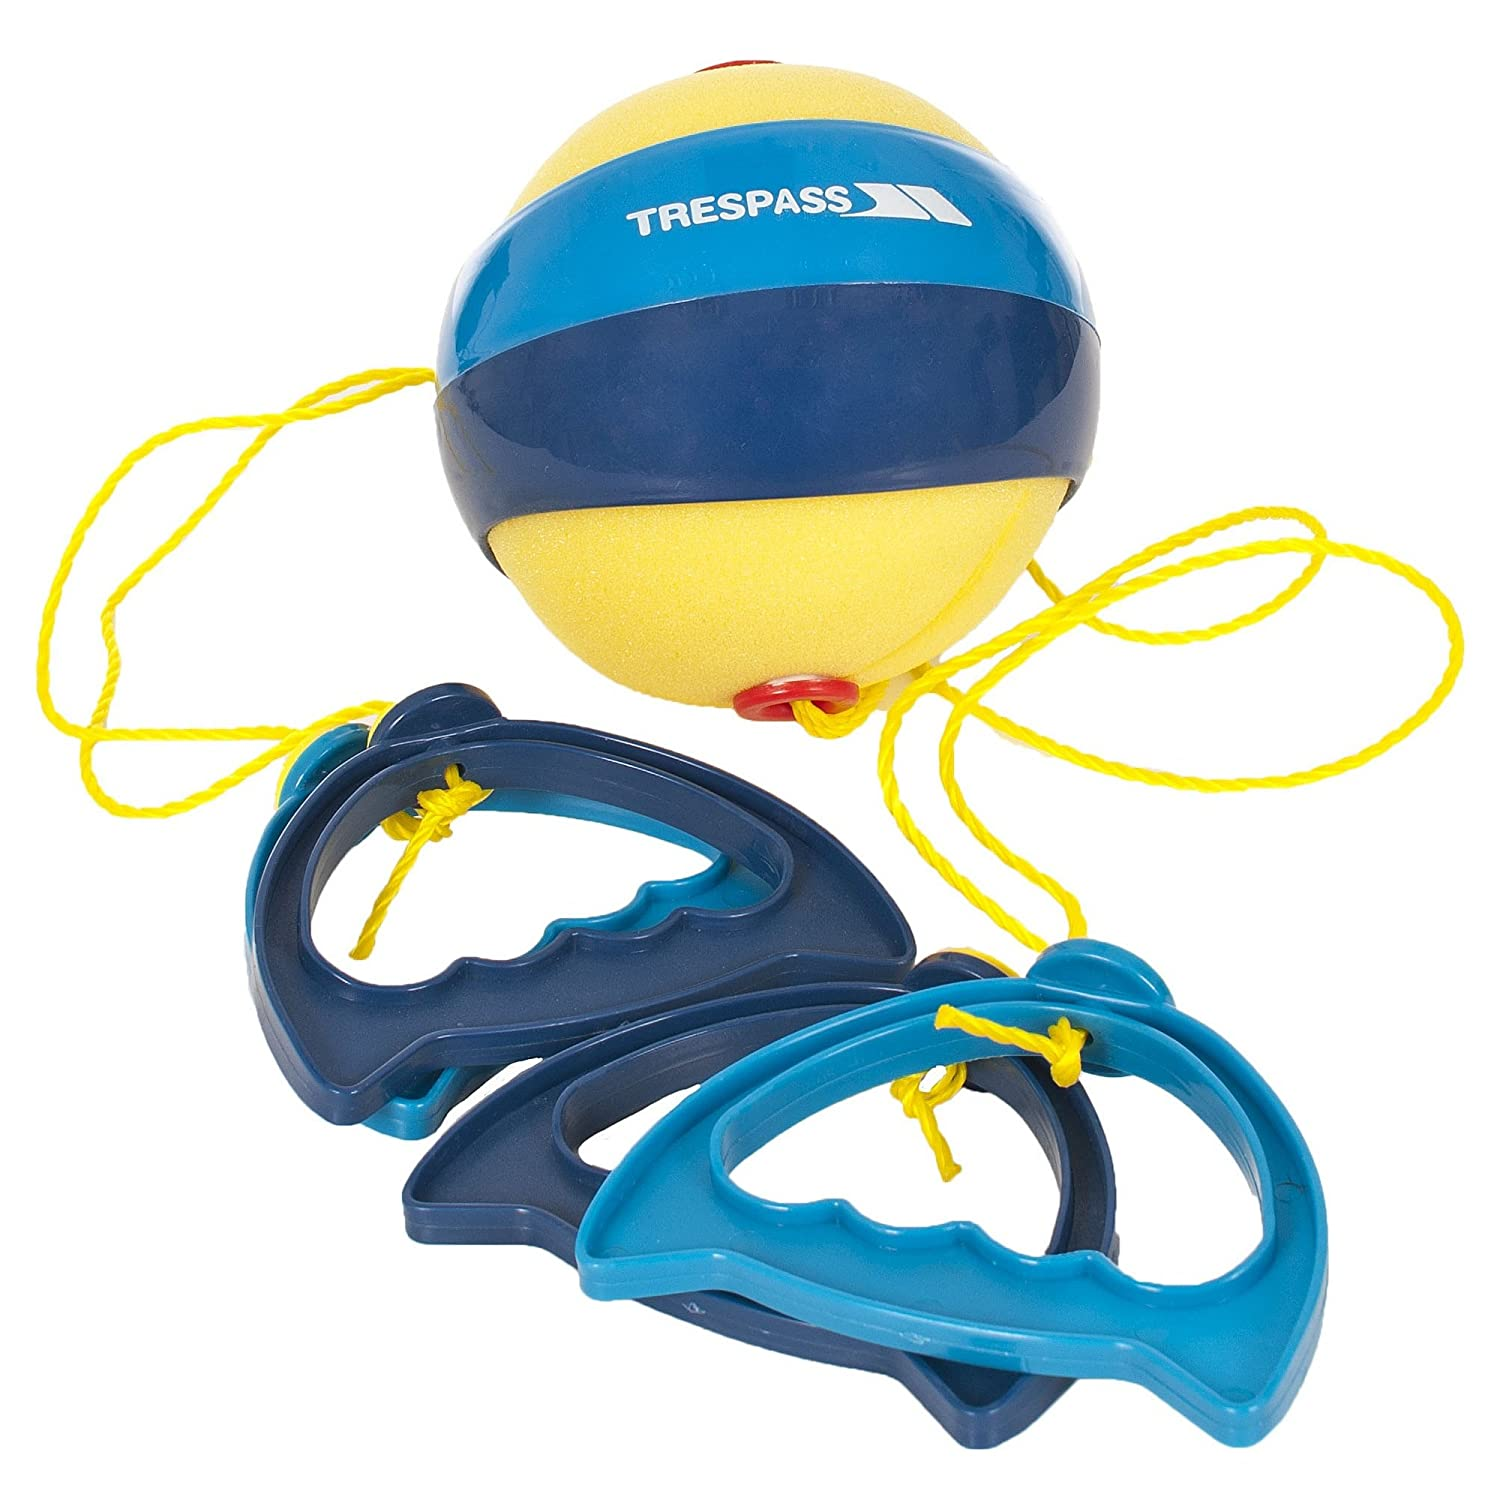 Trespass Squishy Pelota, Unisex Adulto, Talla Única: Amazon.es ...